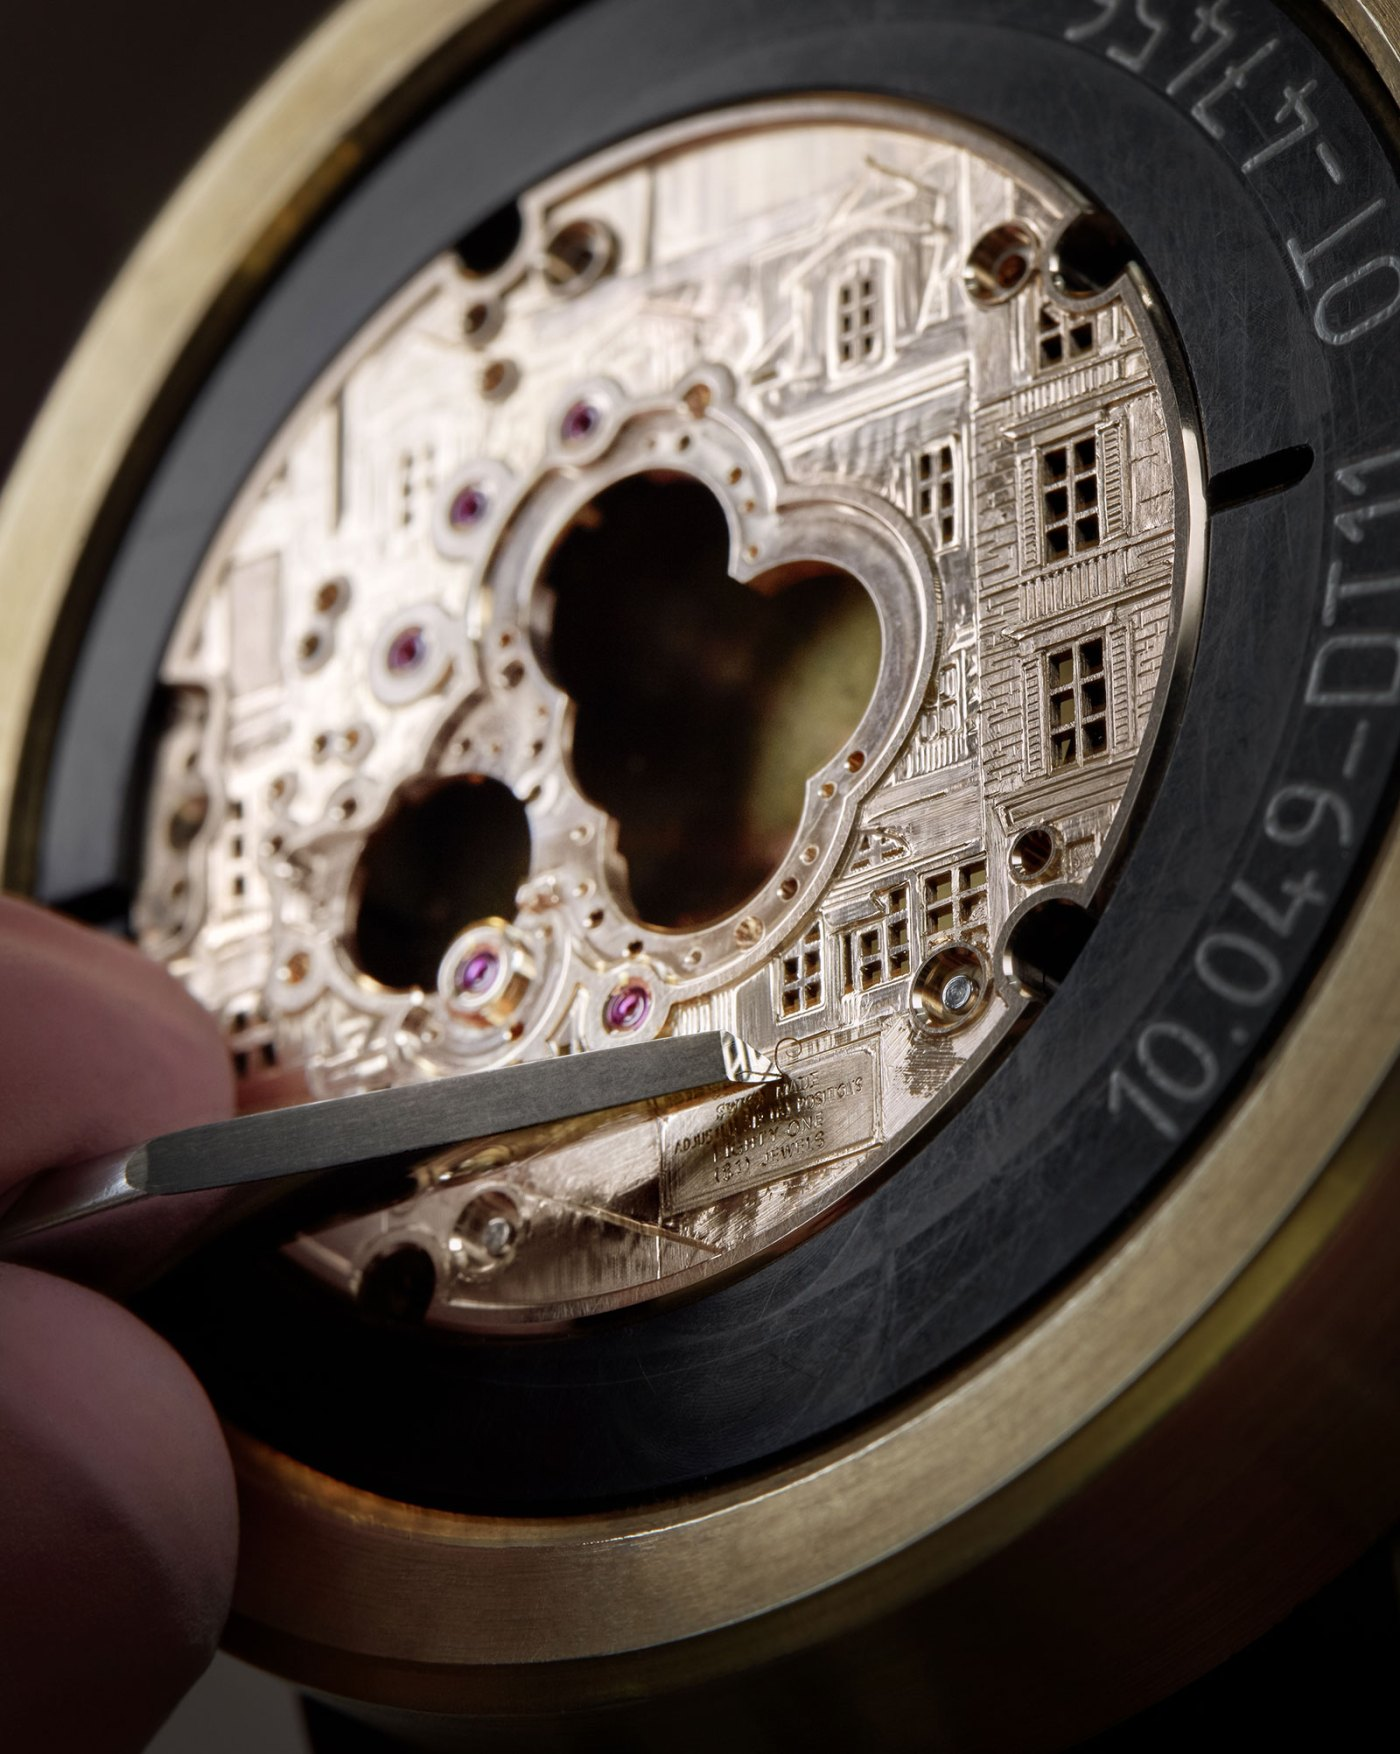 Breguet Classique Double Tourbillon 5345 Quai de l'Horloge hand engraving mainplate